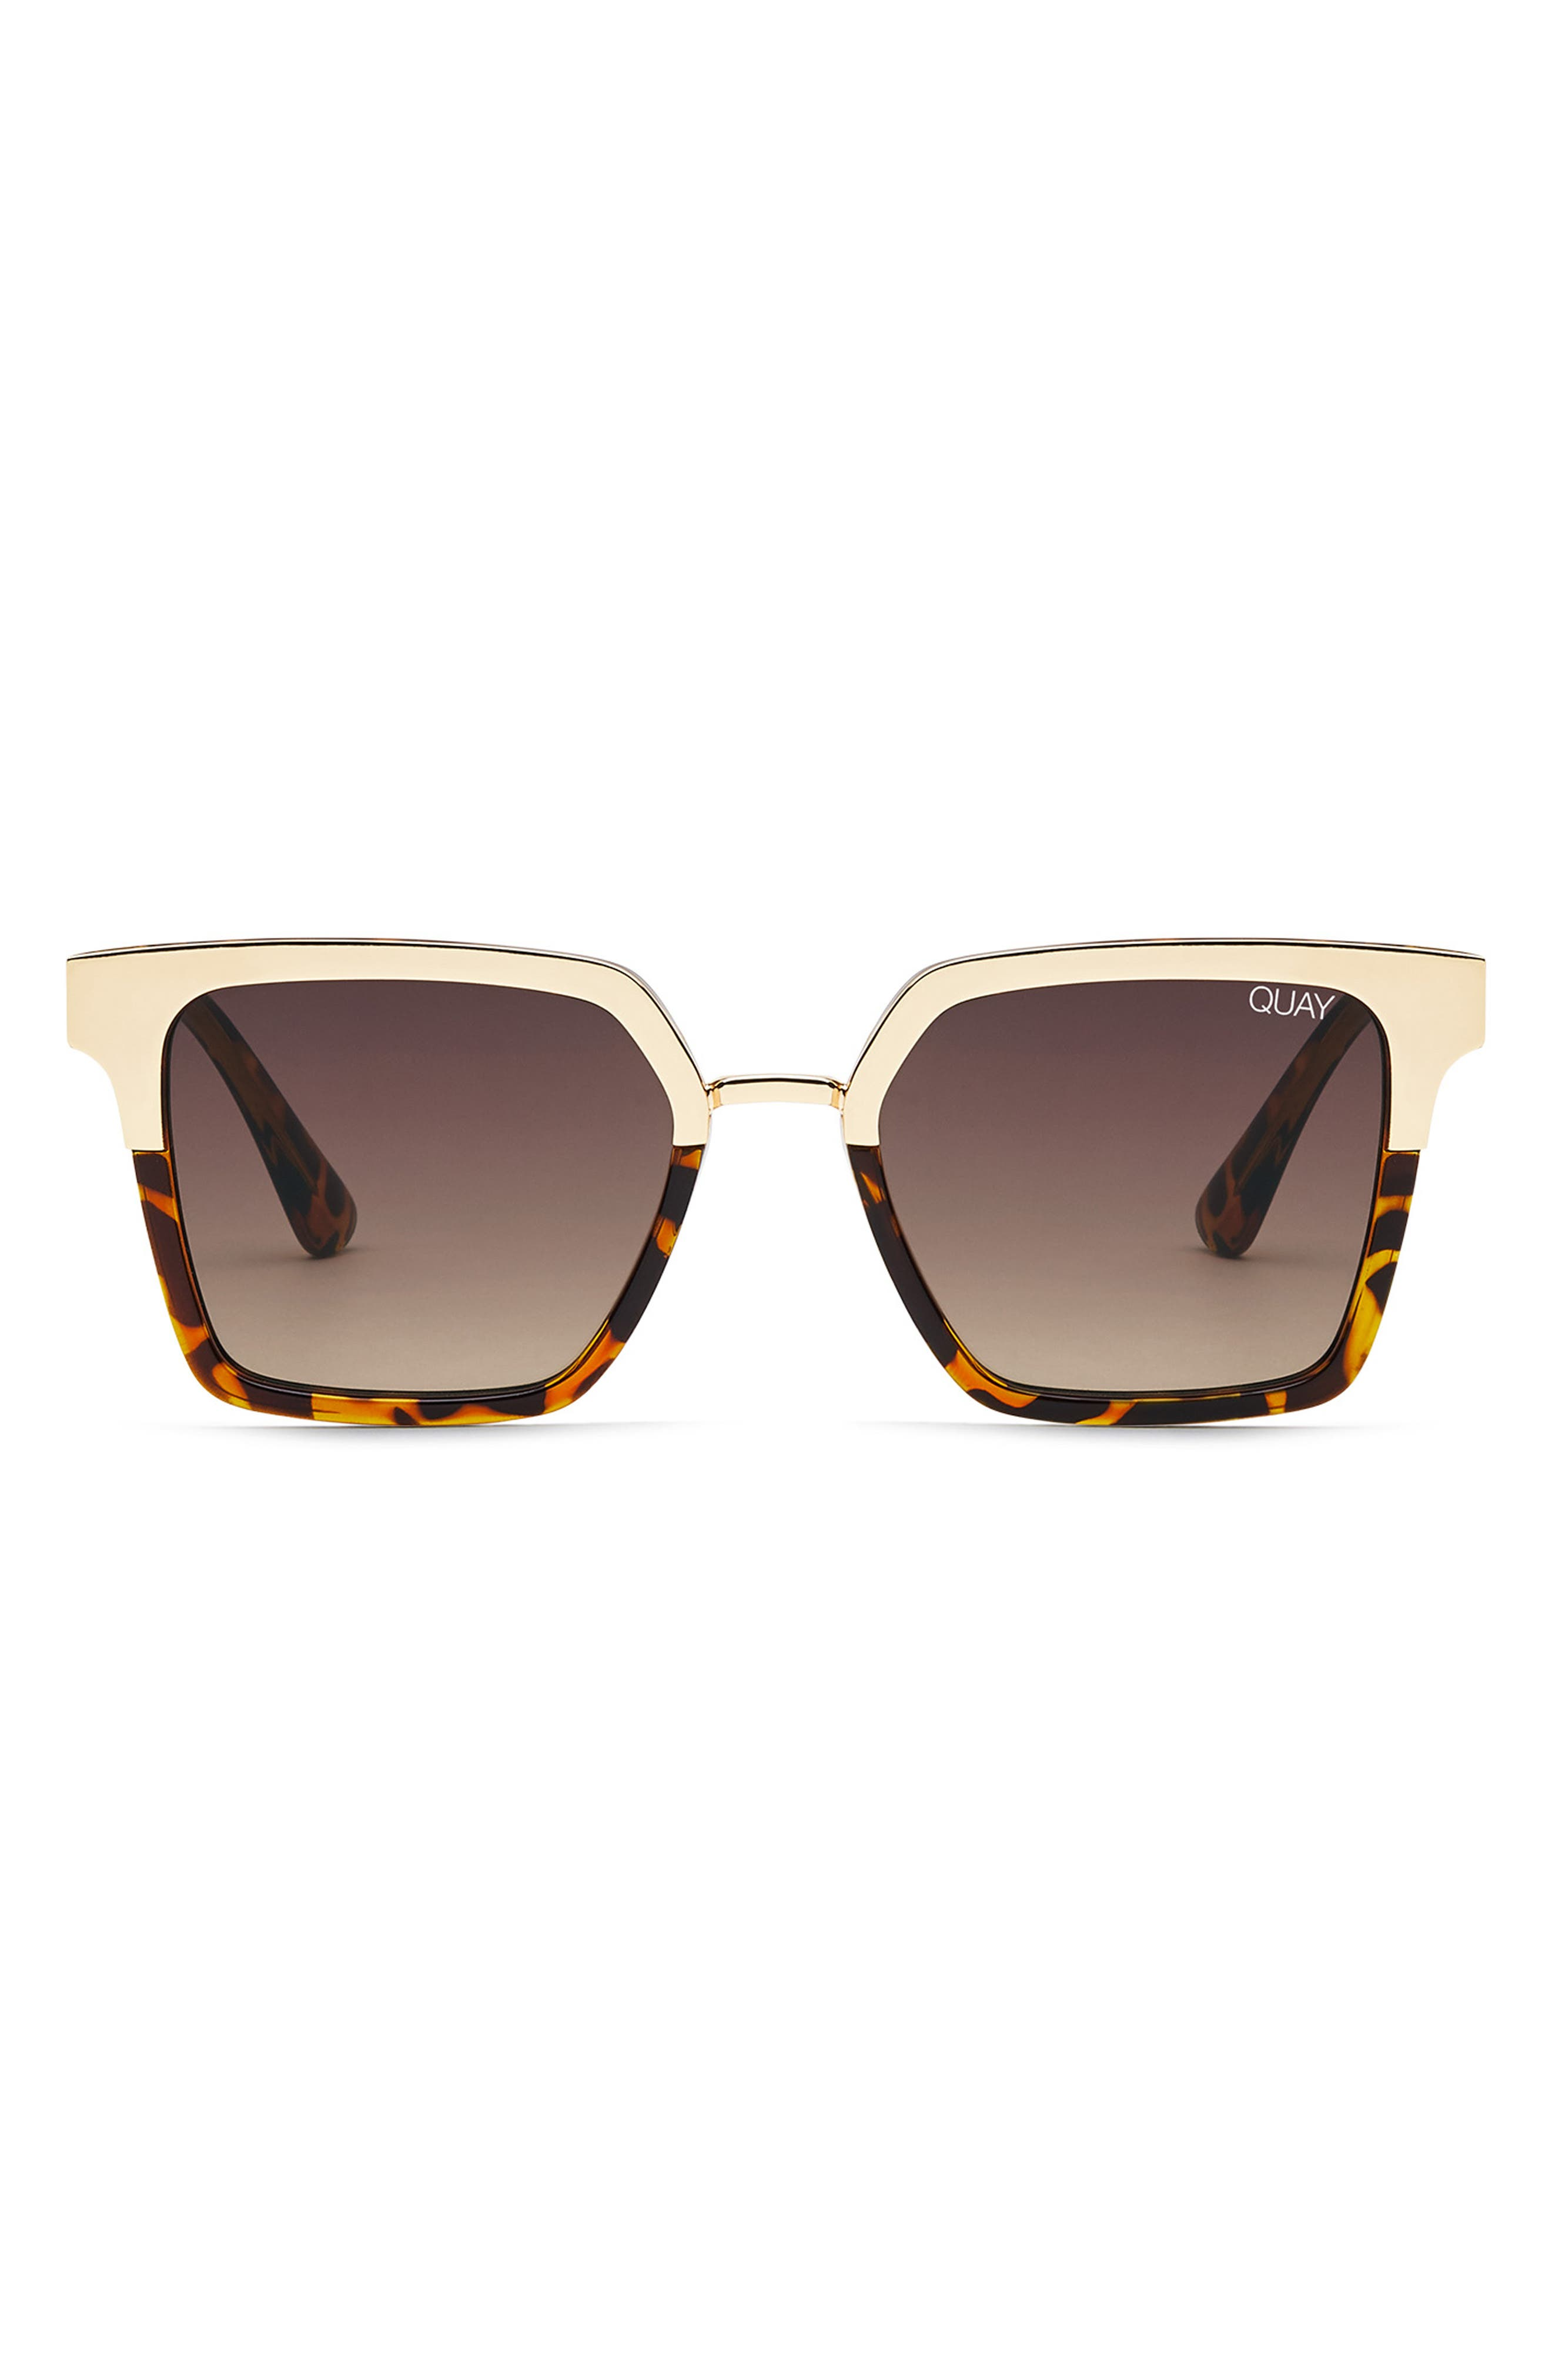 x Jaclyn Hill Upgrade 55mm Square Sunglasses,                             Alternate thumbnail 2, color,                             TORT GOLD / BROWN